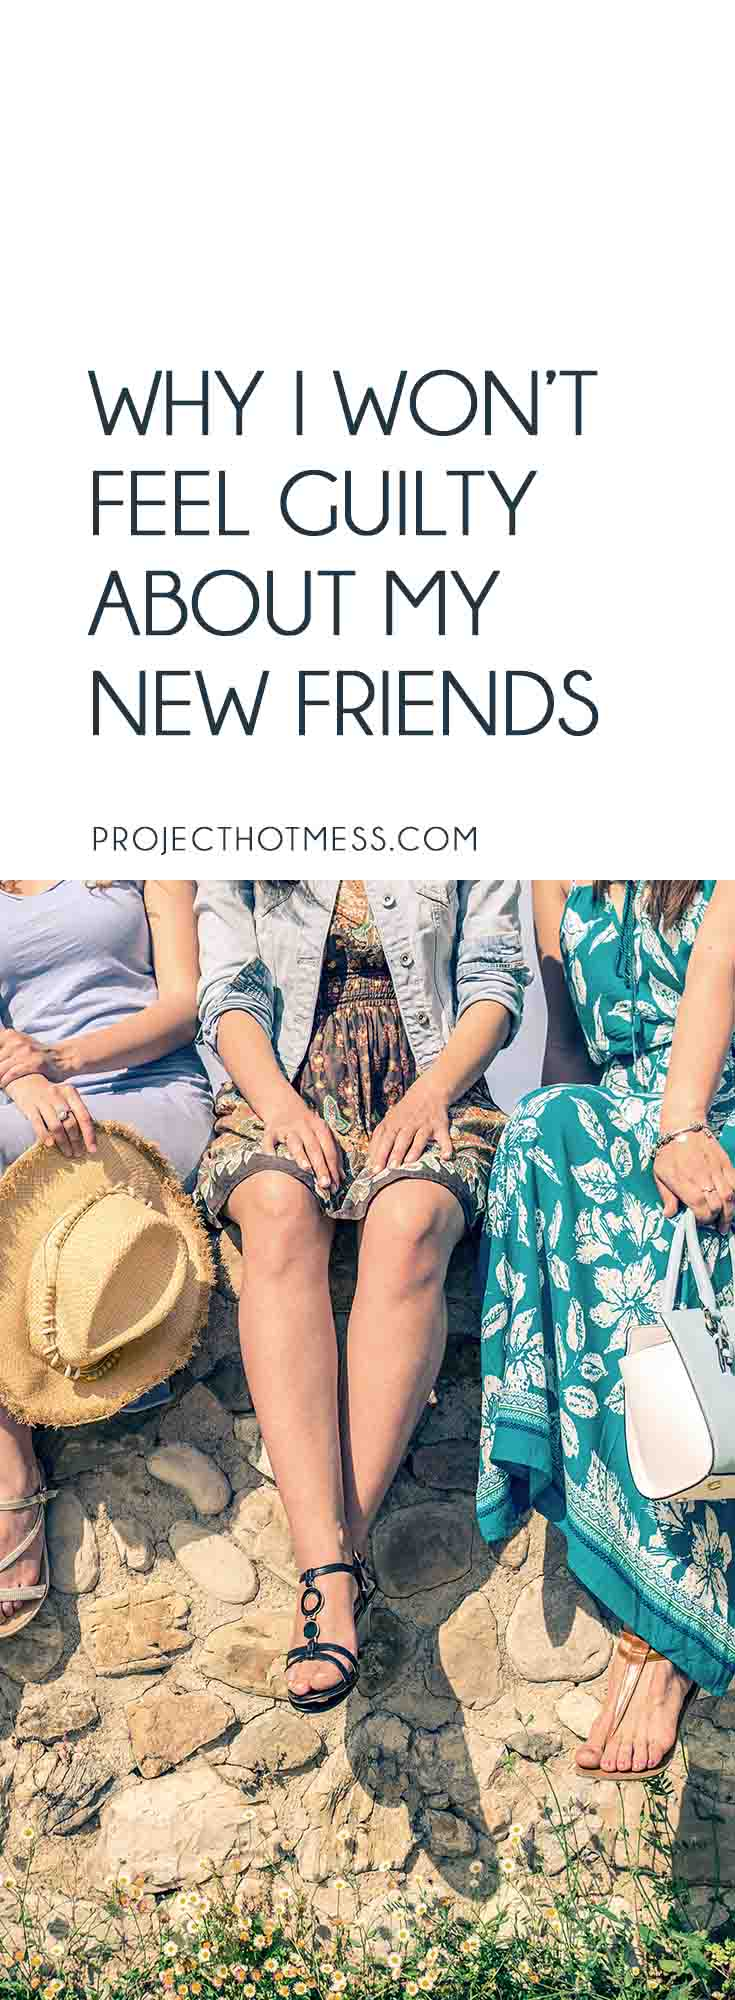 As parts of our life change, so do our groups of friends. I won't be feeling guilty about my new friends, and I won't be ditching my old friends either. Motherhood | Mom Friends | Friendships | Relationships | Couples | Couple Friends | New Friends